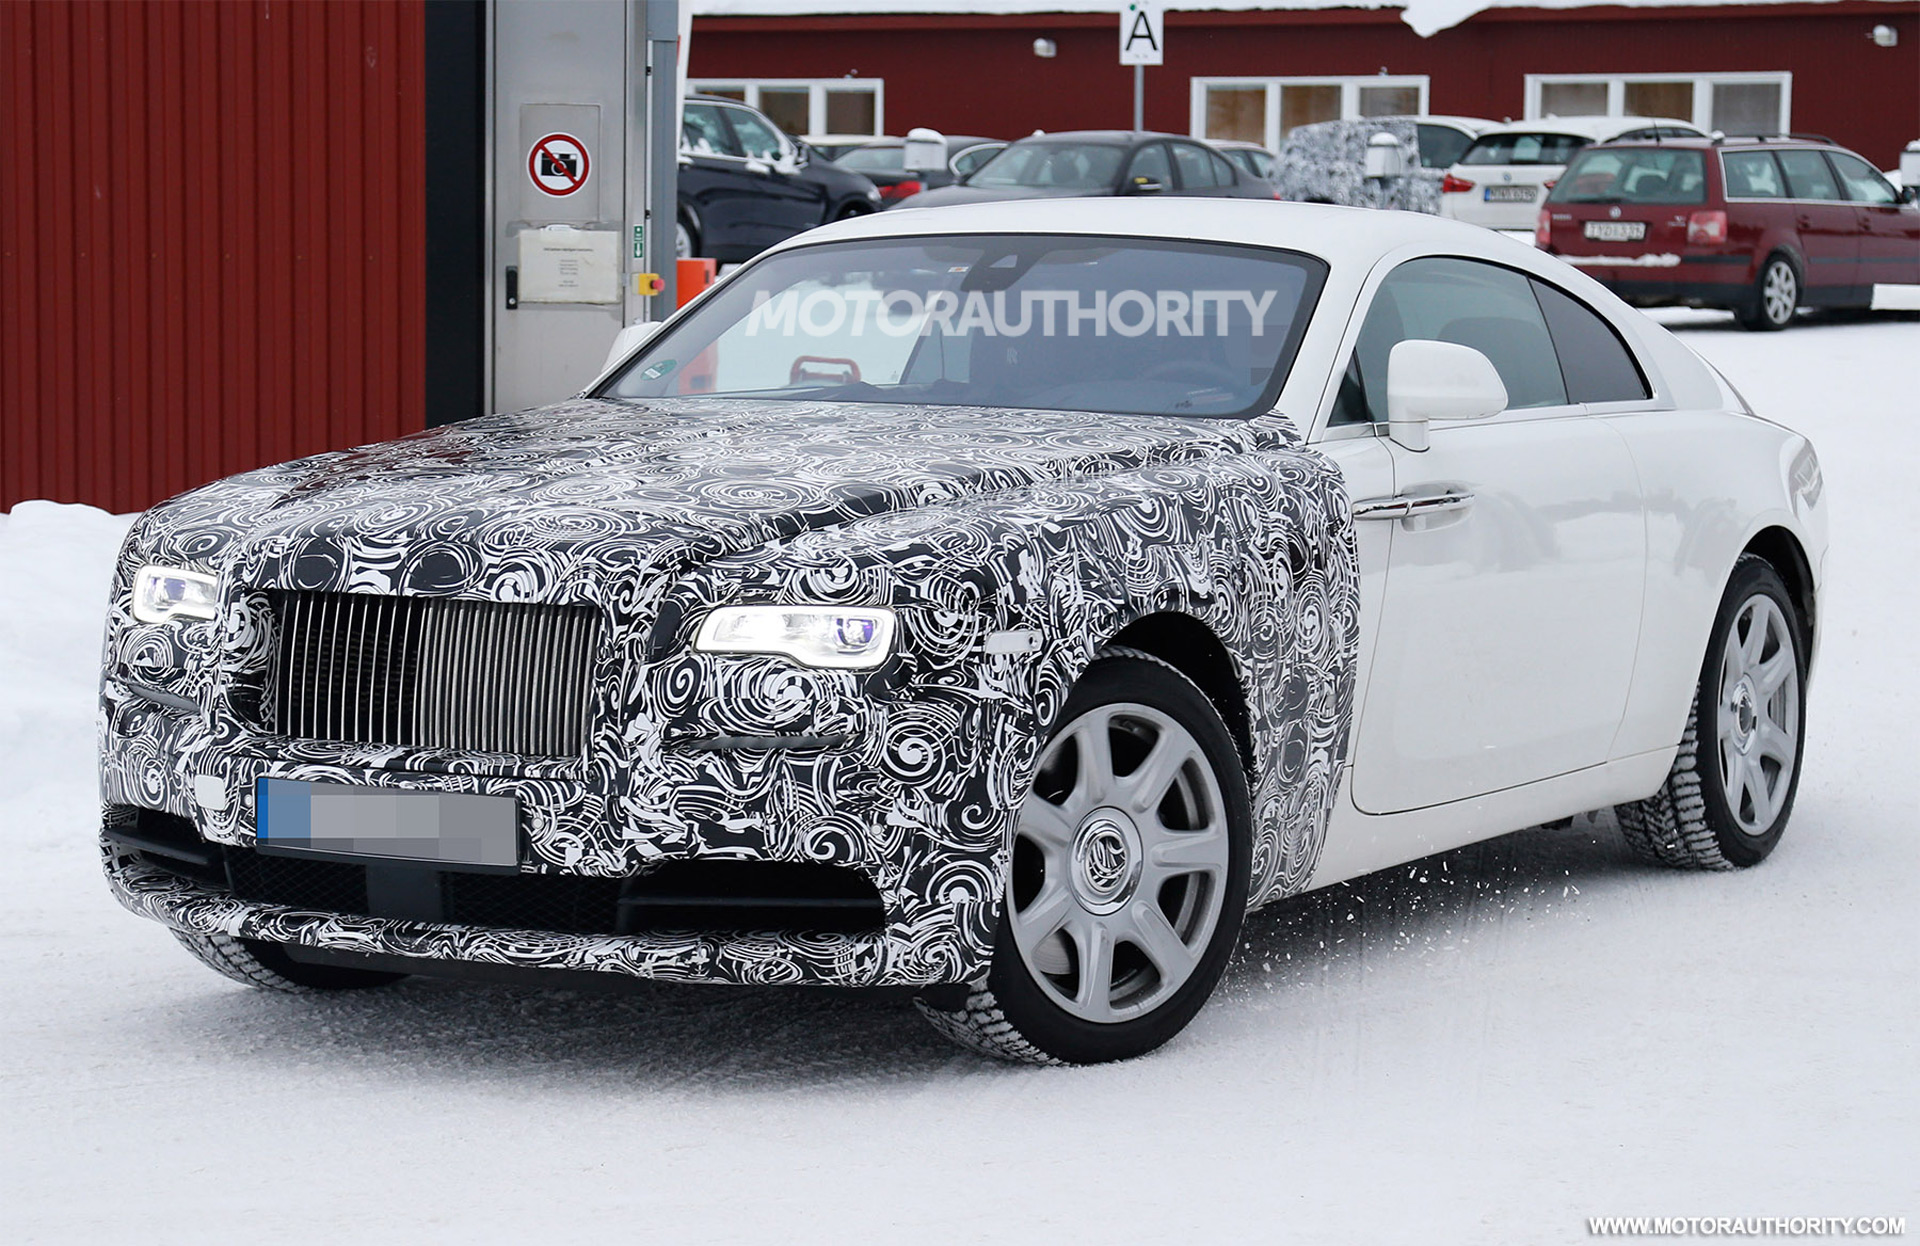 2018 Ford Expedition Review >> 2018 Rolls-Royce Wraith Series II spy shots